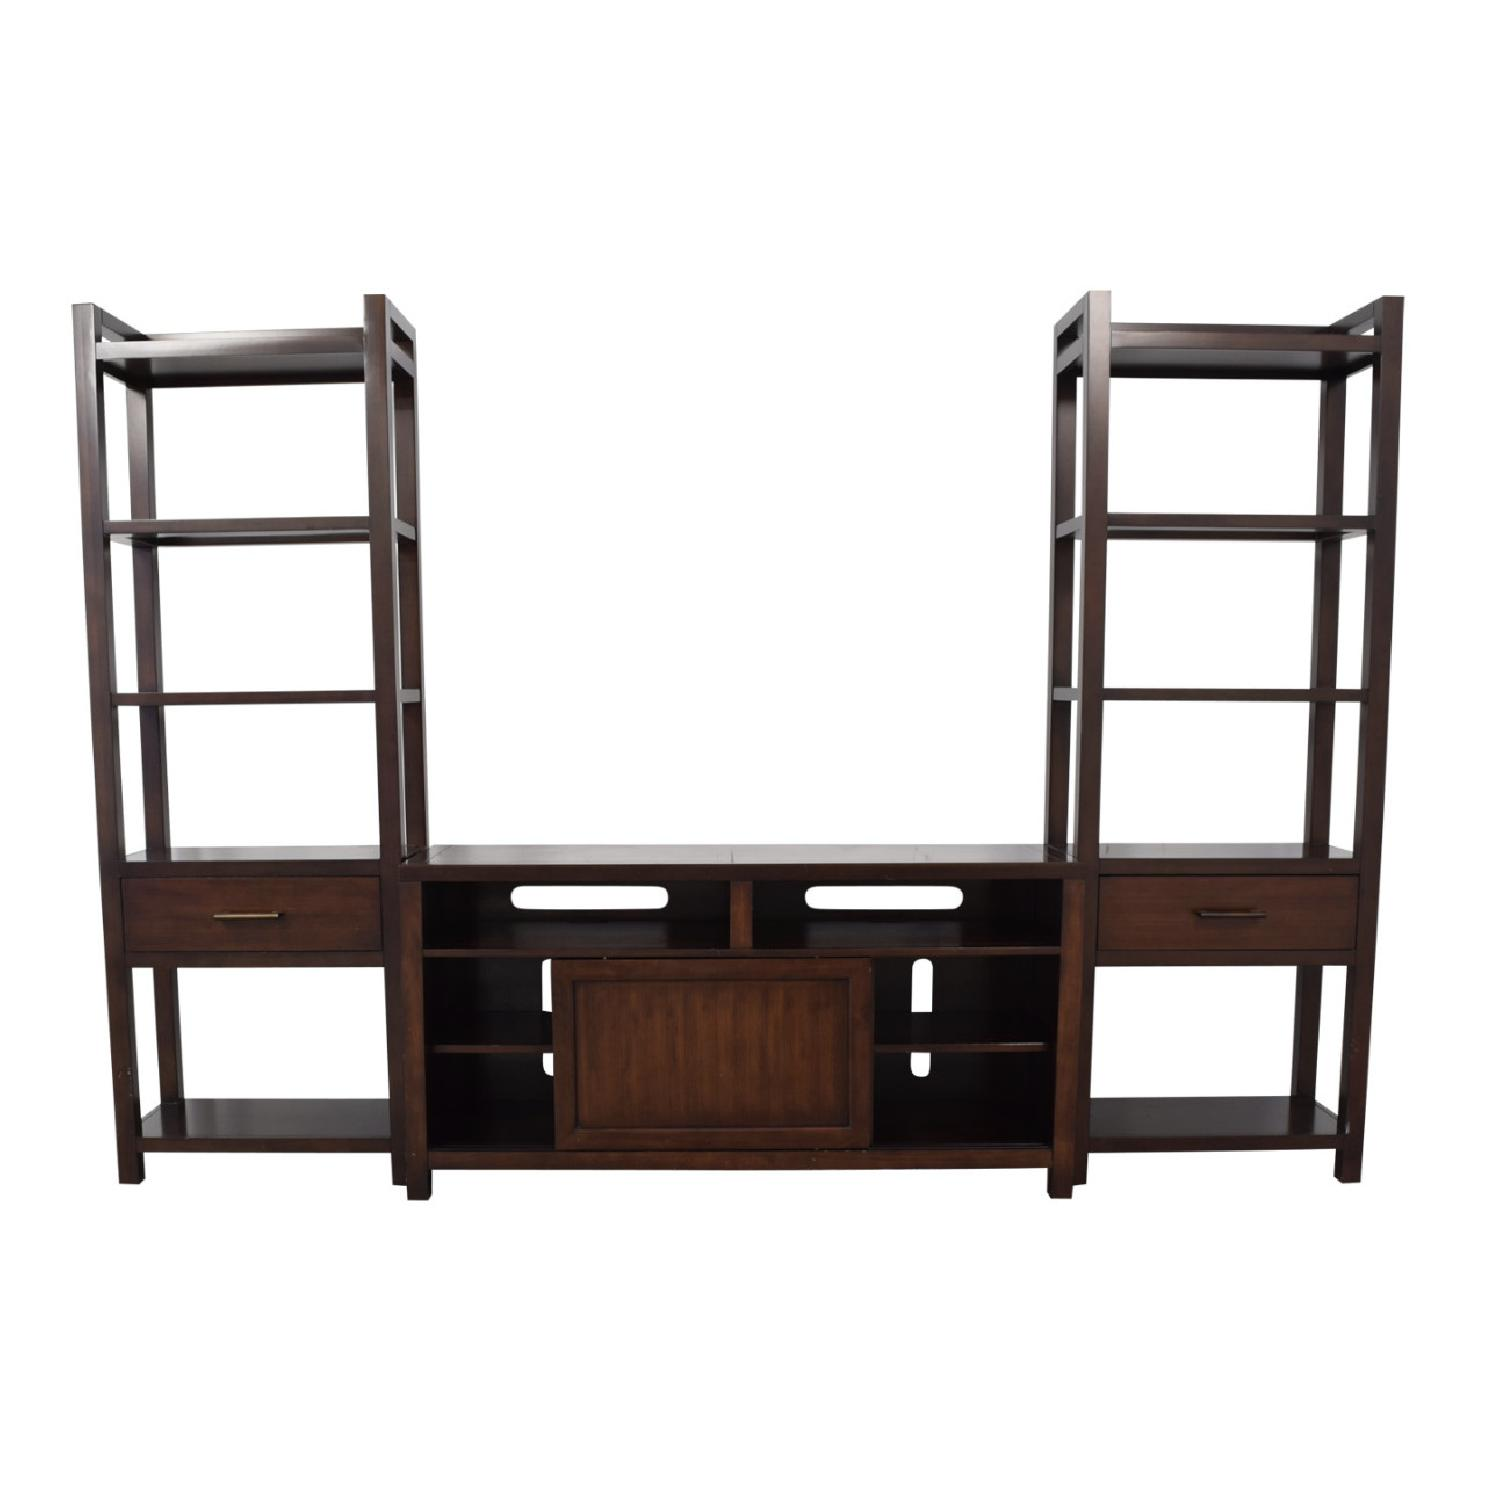 Crate & Barrel Media Console w/ 2 Media Towers - image-2